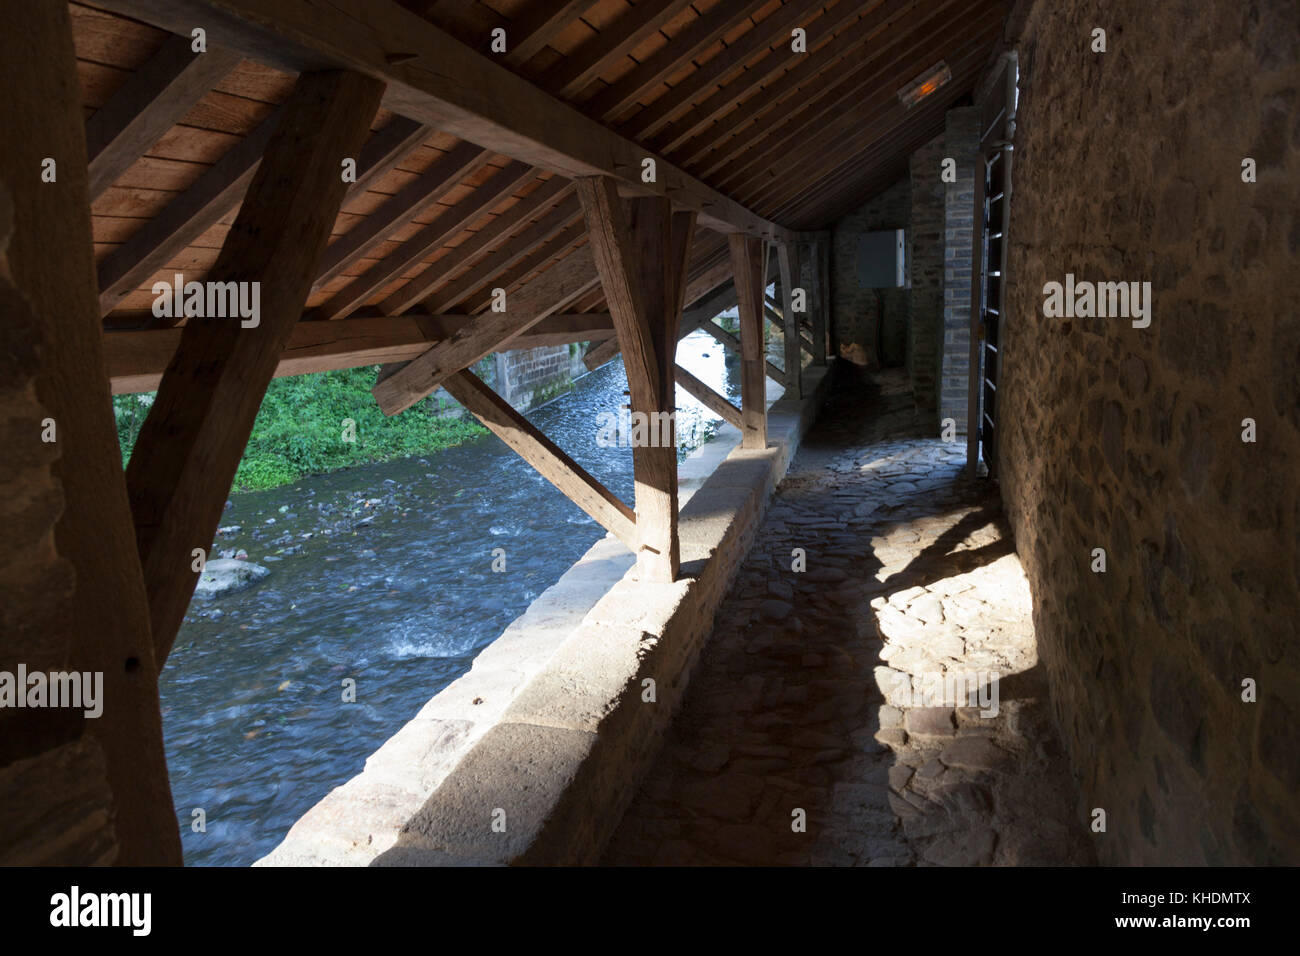 The inside of wash  houses, at Vannes (Morbihan - France). Located below ramparts, they mirror in the Marle river. - Stock Image